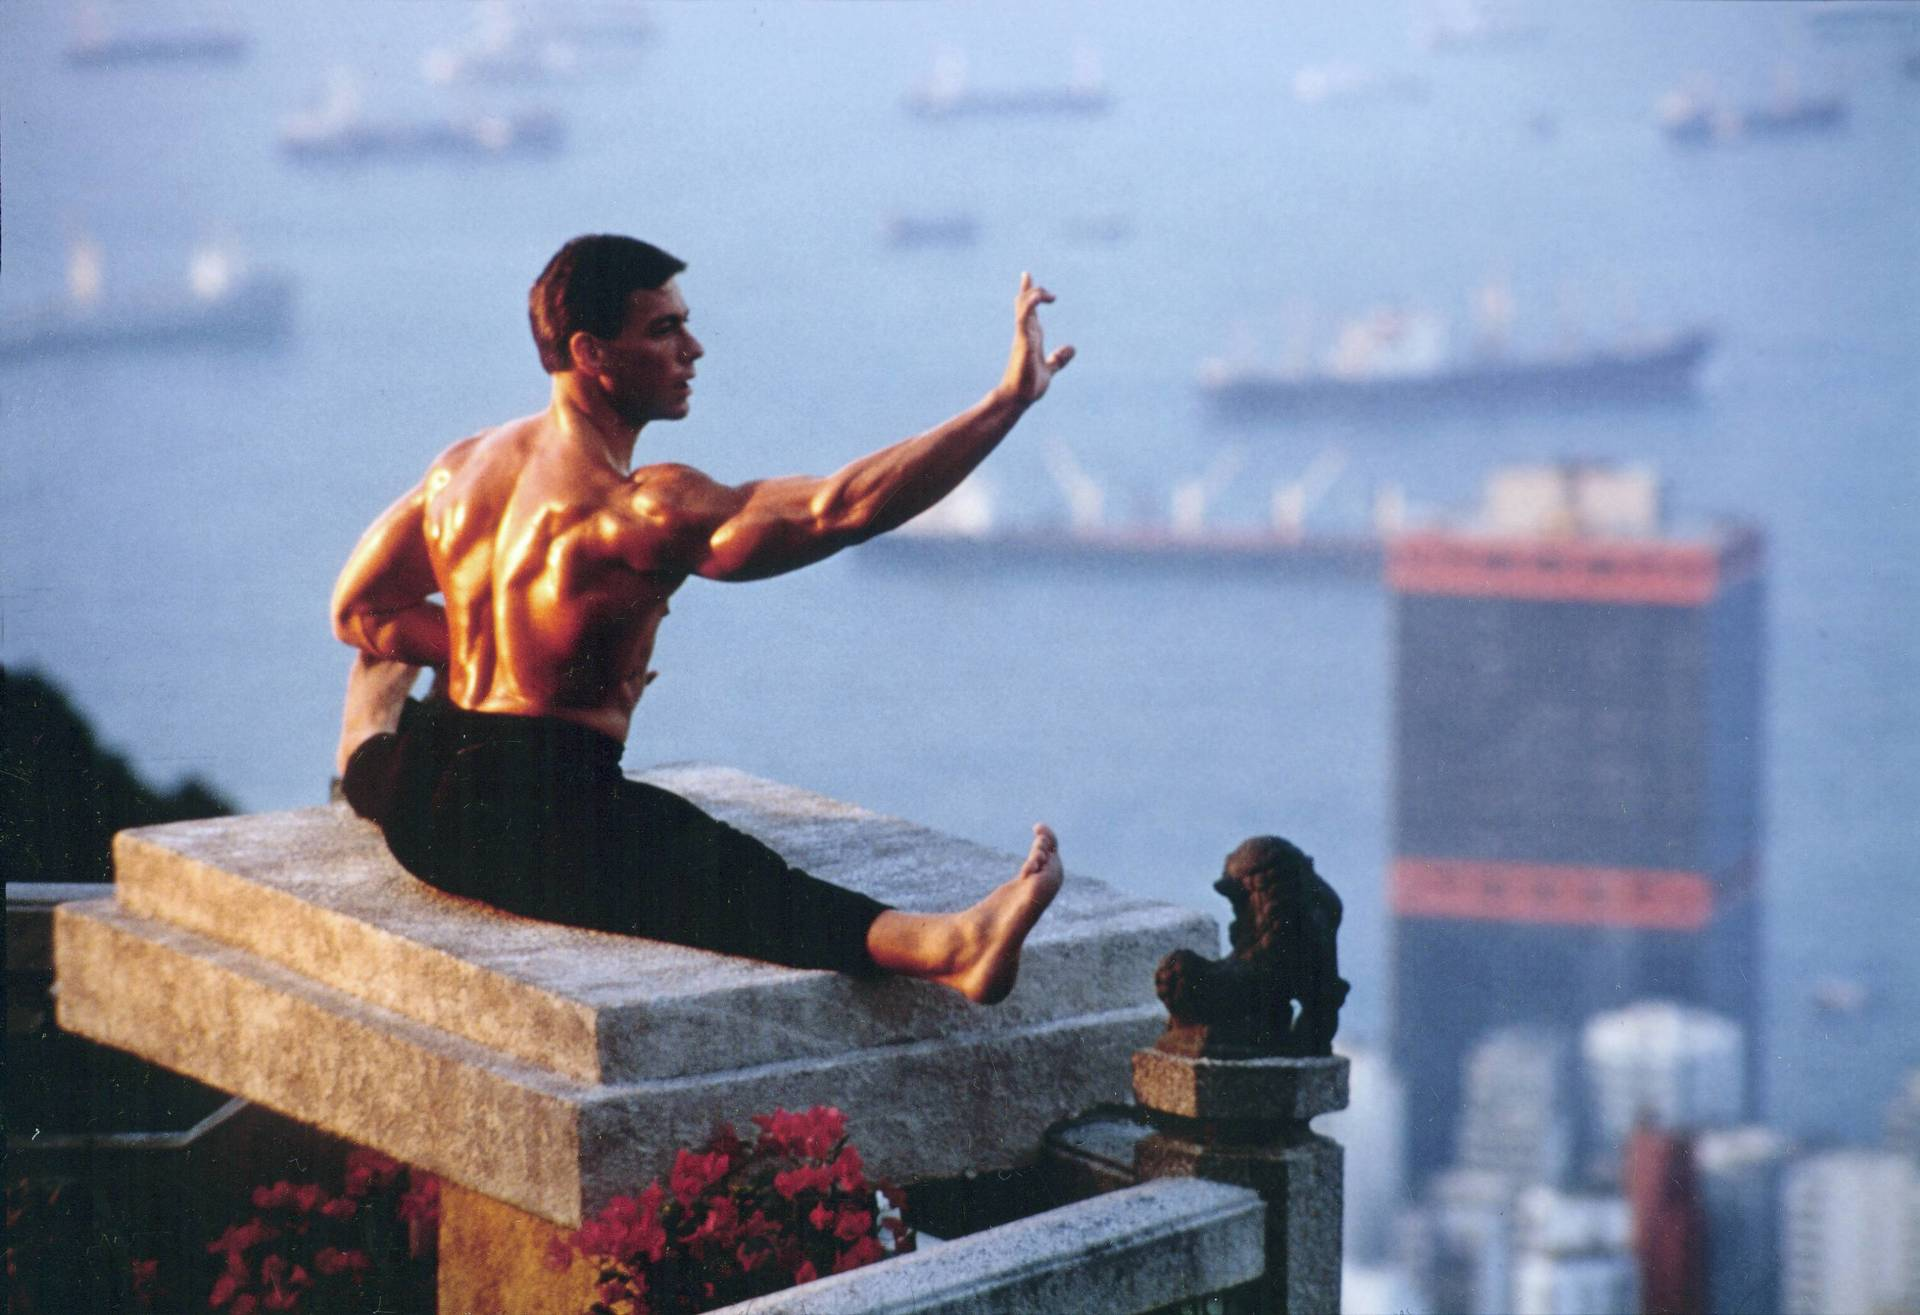 5f856226ae5ac9649b320eb8 25 Things You Probably Didn't Know About Jean-Claude Van Damme